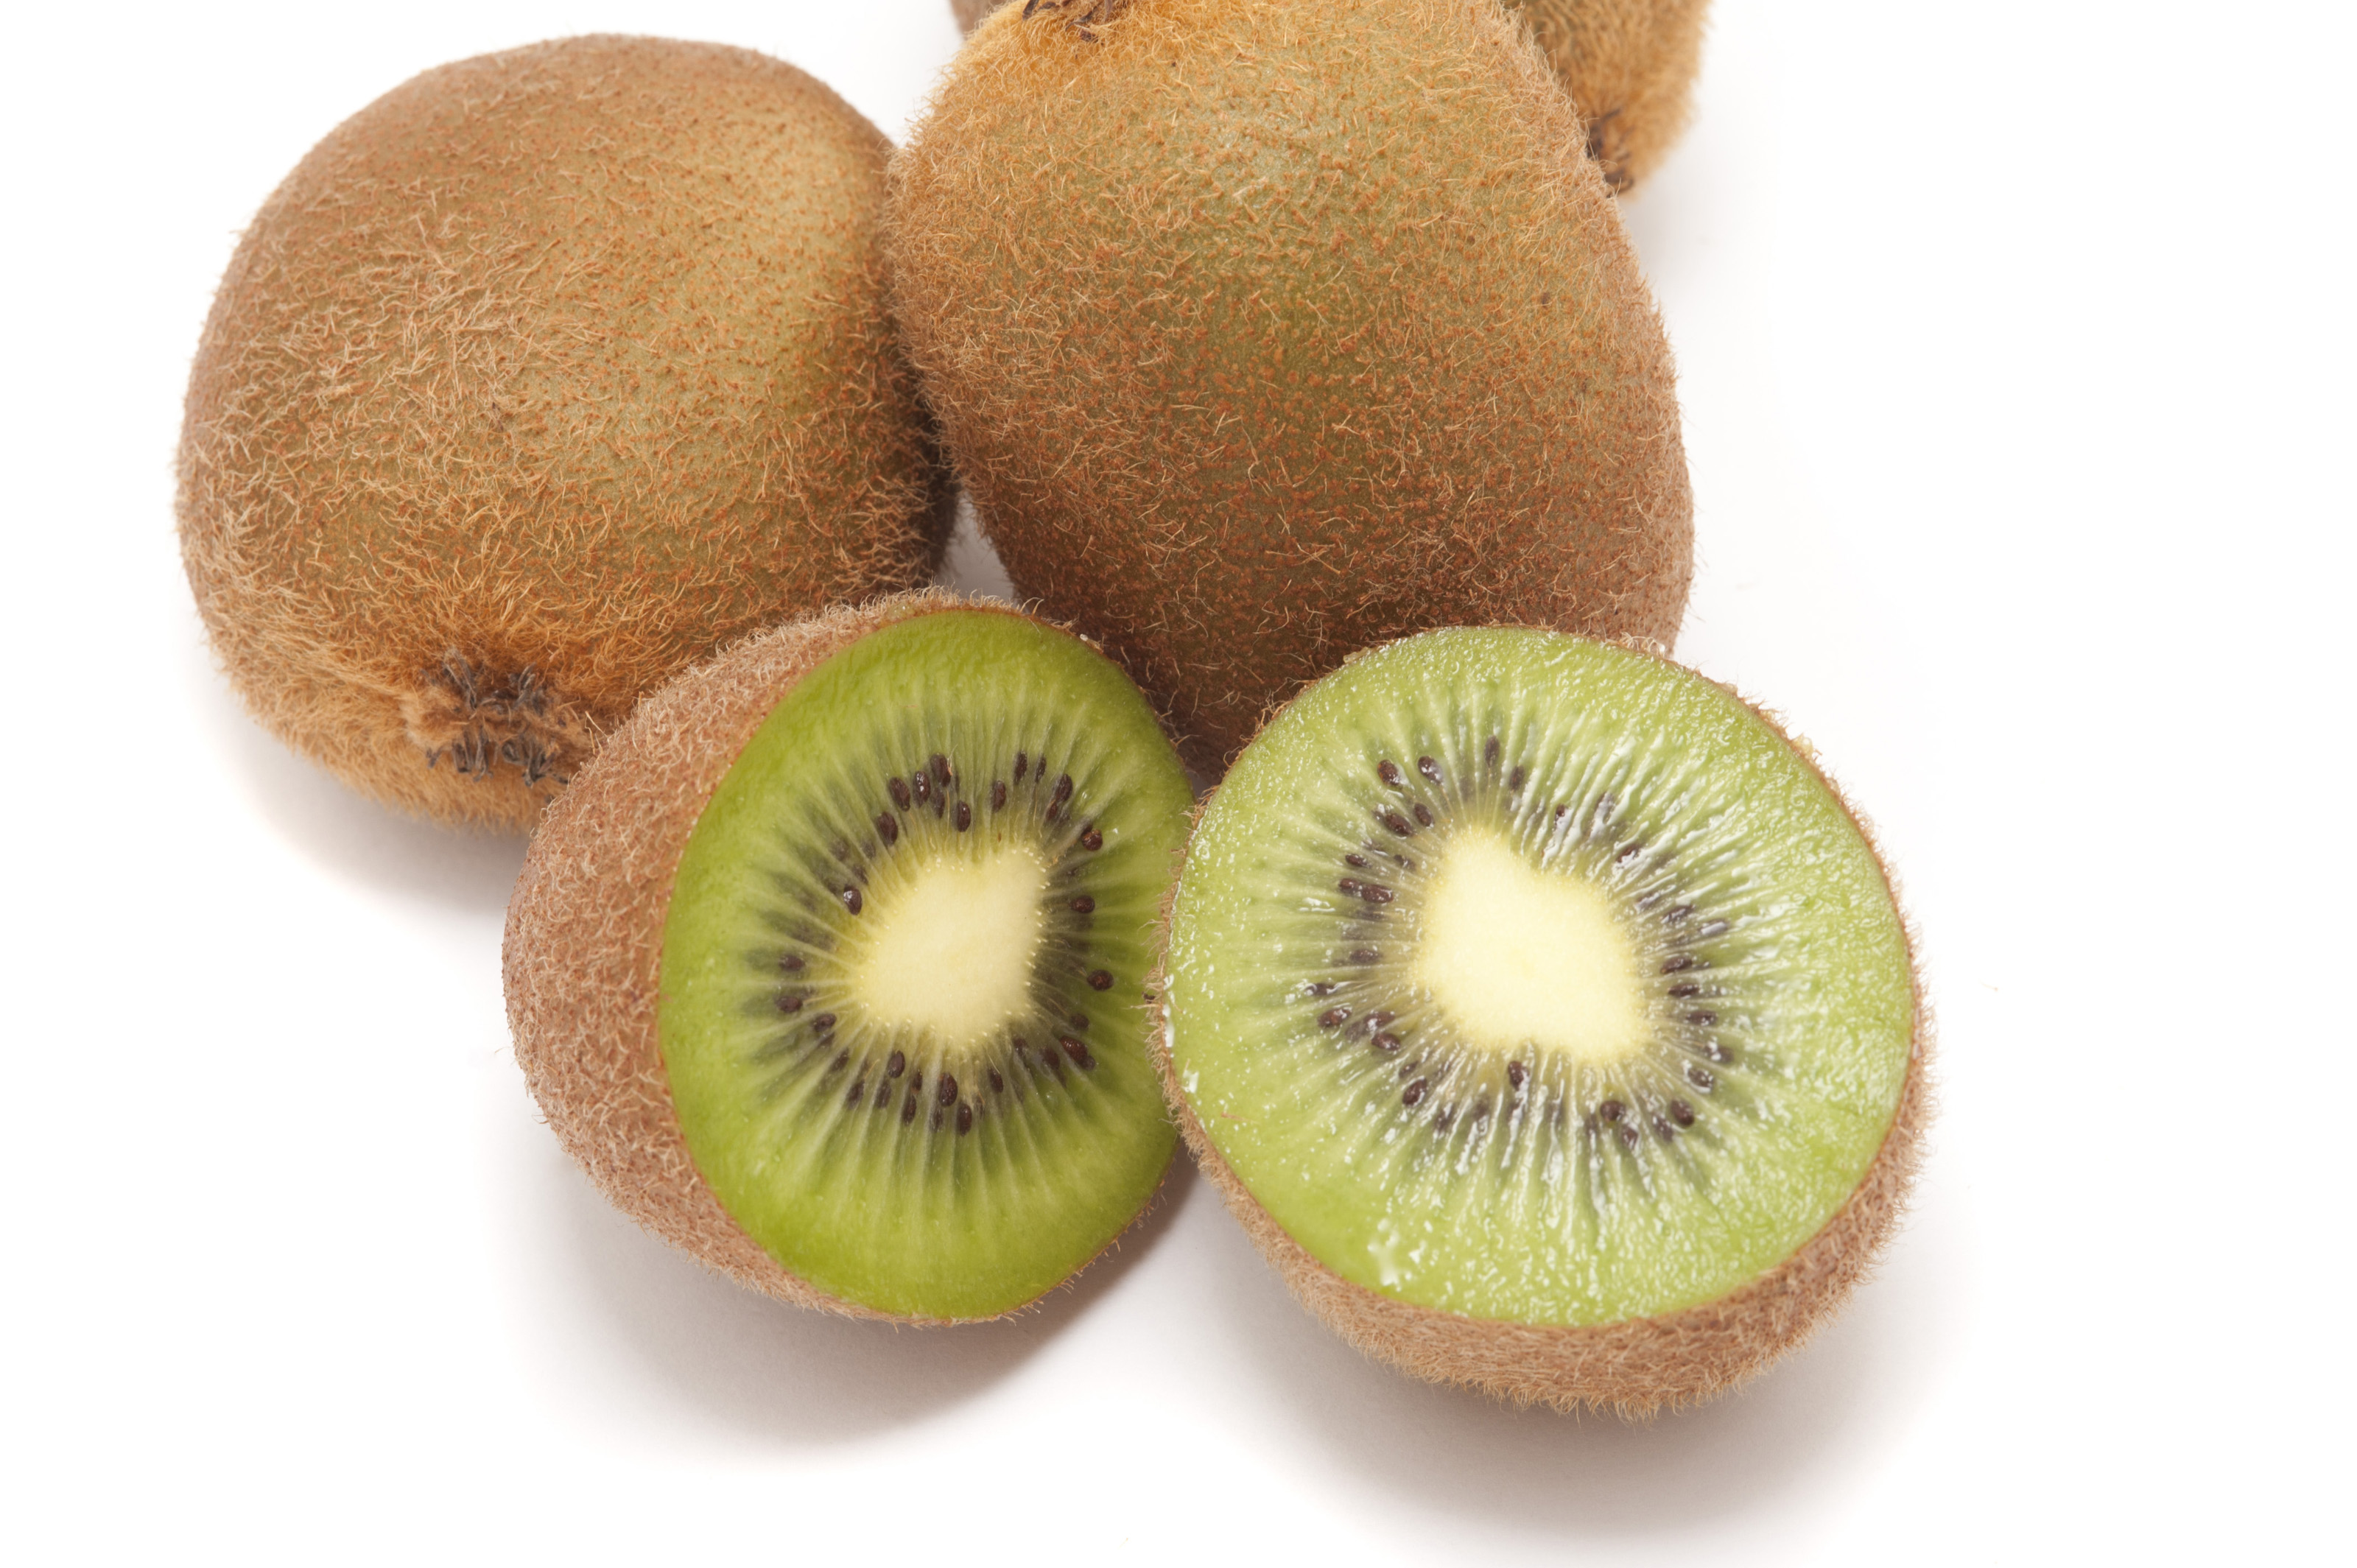 Kiwi Is Good For Dogs